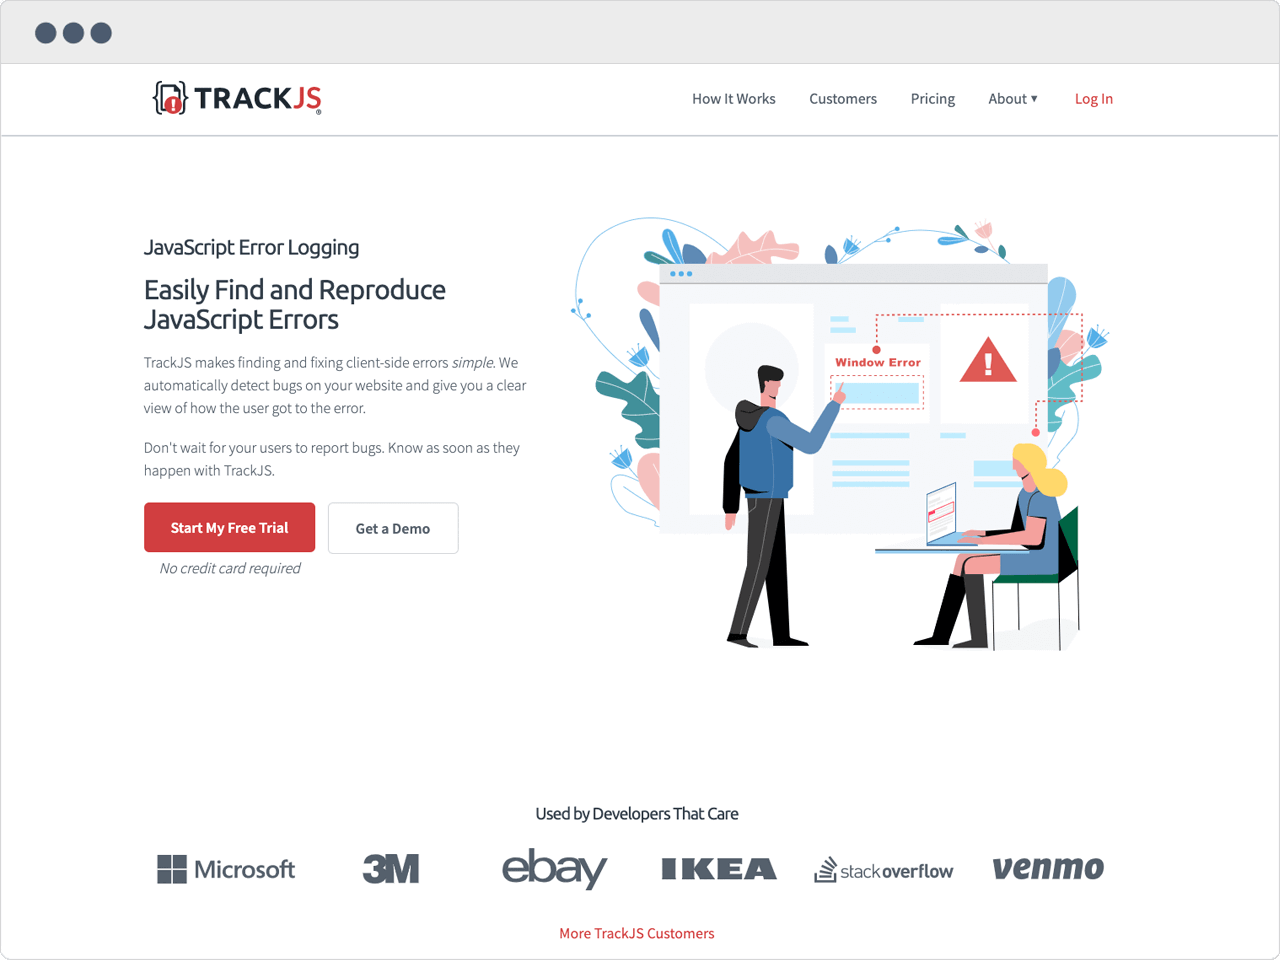 The New TrackJS Website